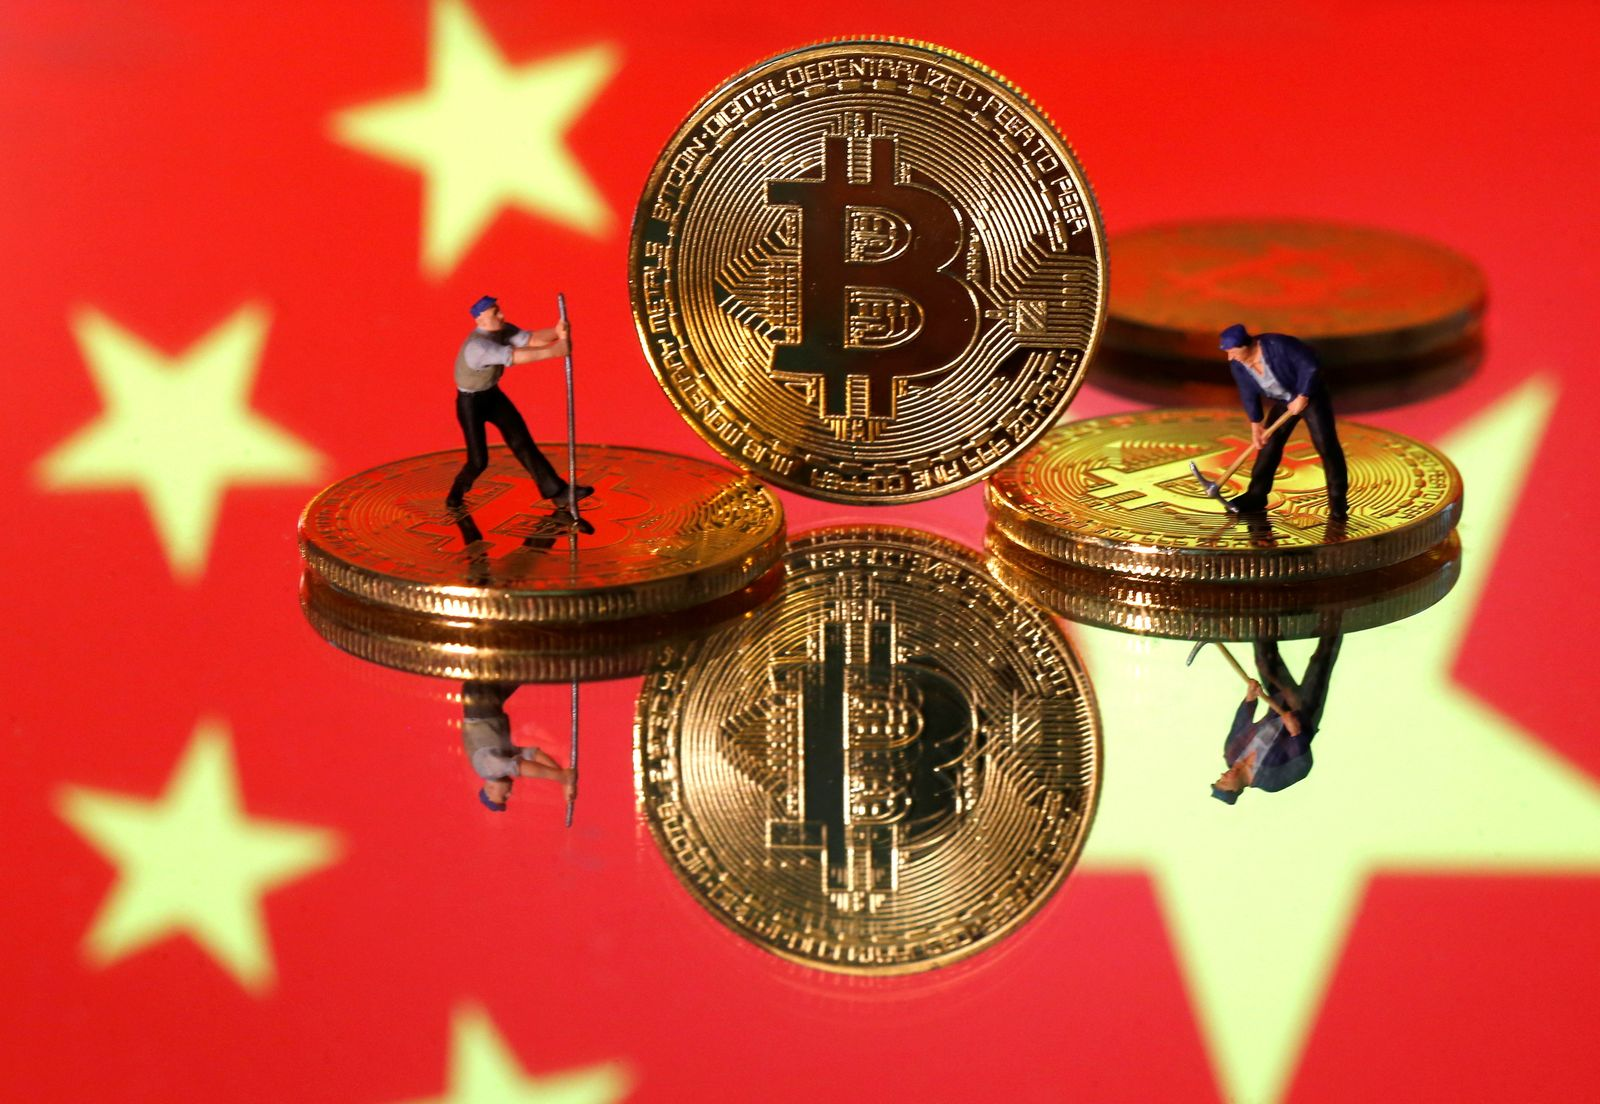 FILE PHOTO: Picture illustration of small toy figurines and representations of the Bitcoin virtual currency displayed in front of an image of China's flag